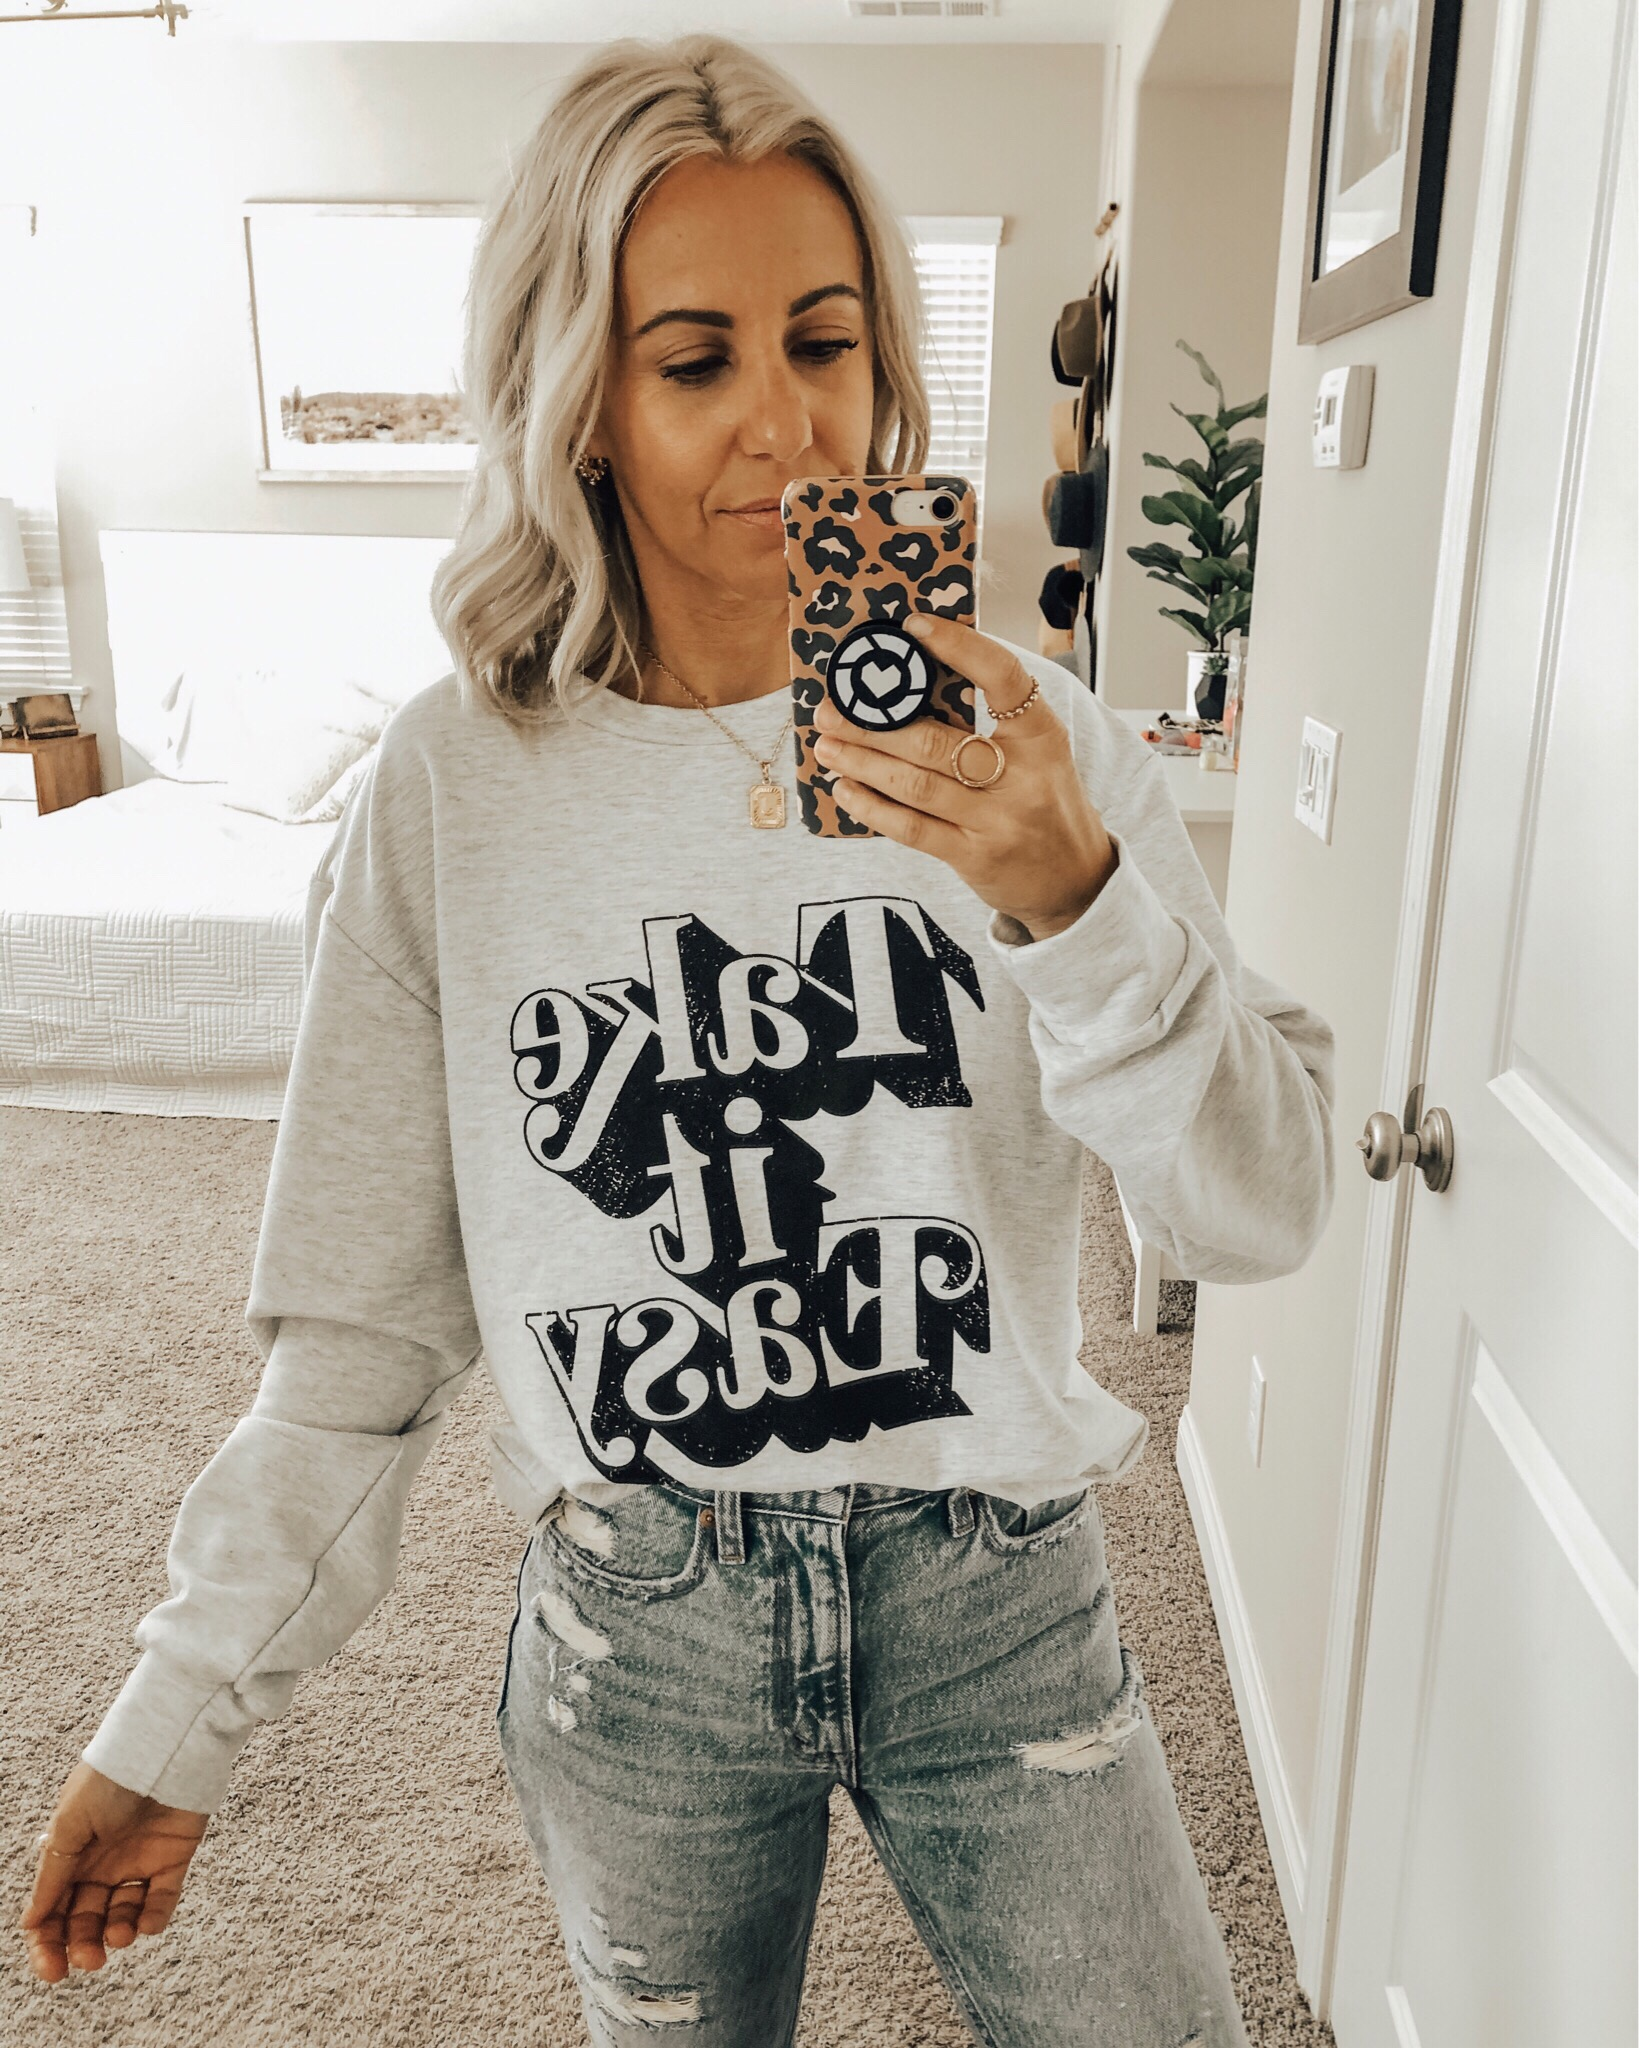 OCTOBER TOP 10- Jaclyn De Leon Style + Sharing the best selling items from the month of October which include a leopard sweater, huggie hoop earrings, graphic tees + sweatshirts, faux fur slippers, striped sweaters, western booties and denim